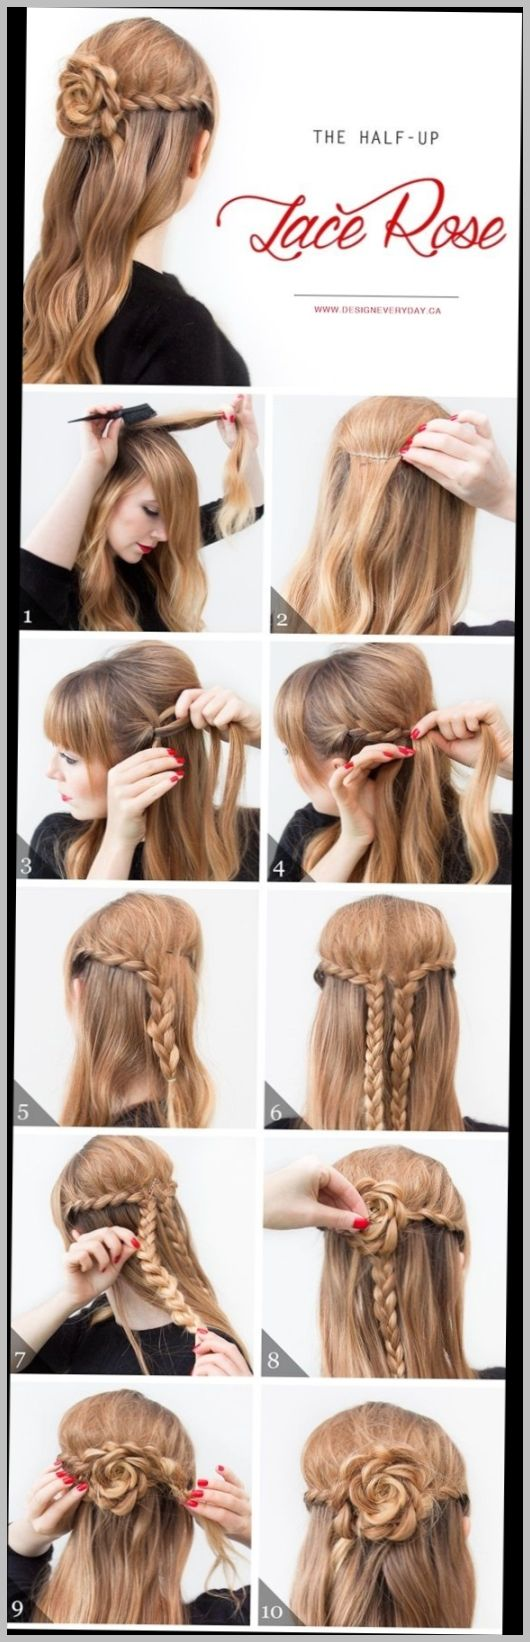 Easy Hairstyles For Short Hair To Do At Home Step By Step Long Hair Styles Diy Hairstyles Easy Hair Styles